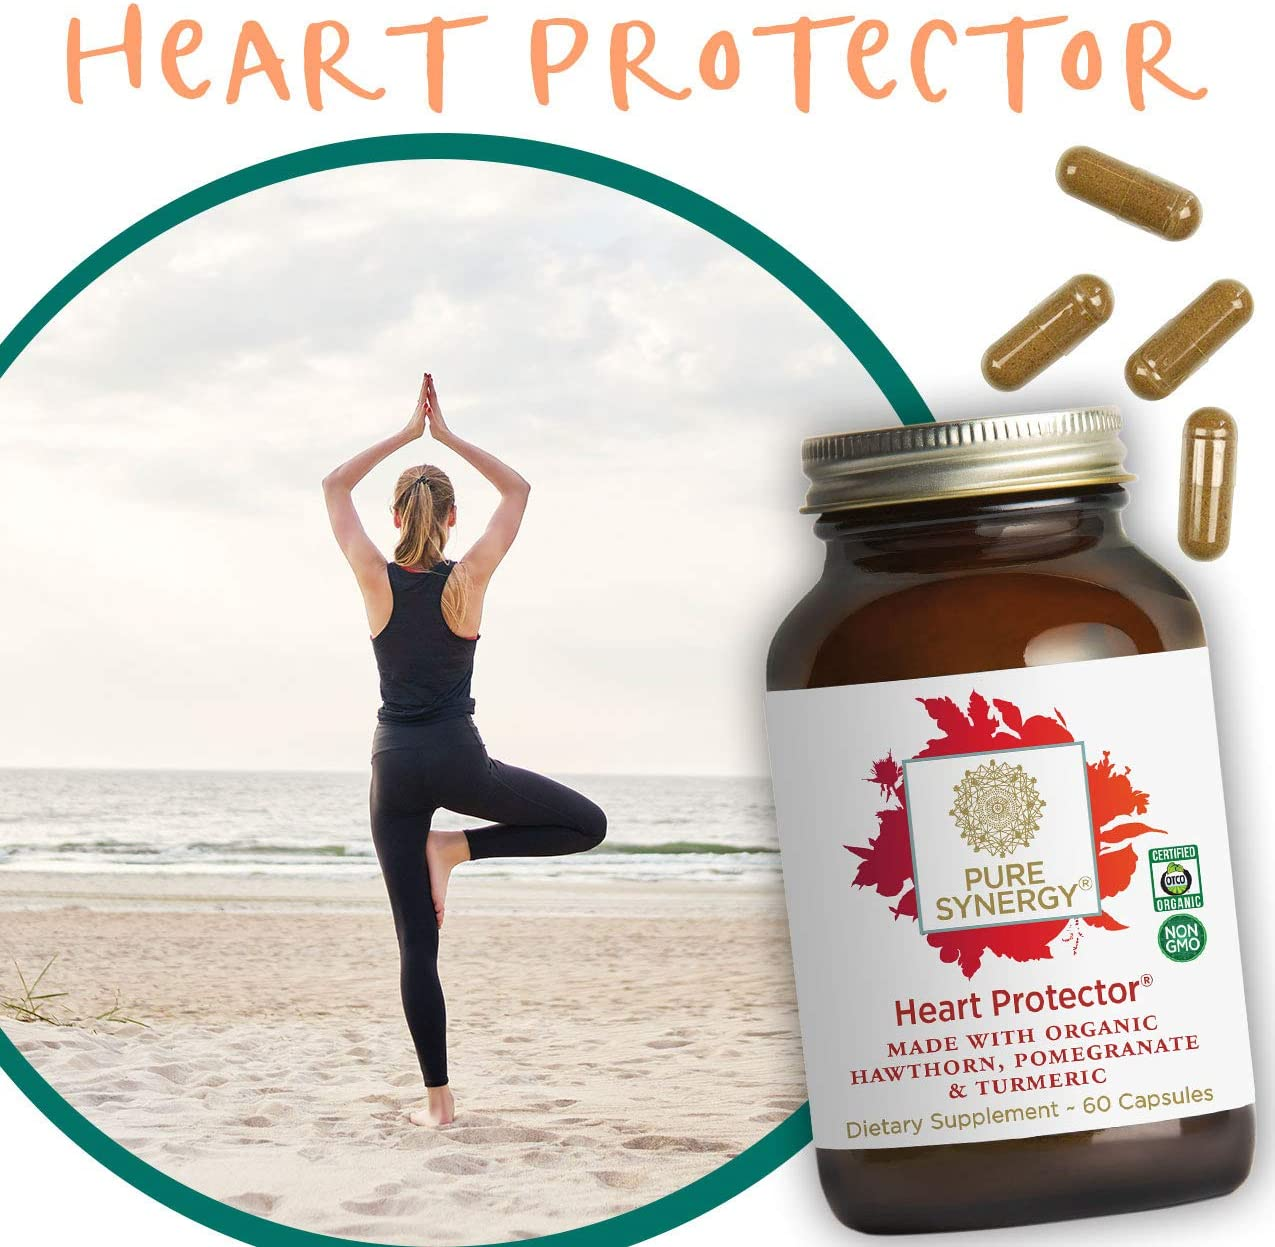 Pure Synergy Organic Heart Protector (60 Capsules) Complete Heart Supplement w/ Hawthorn, Curcumin, Nattokinase: Health & Personal Care